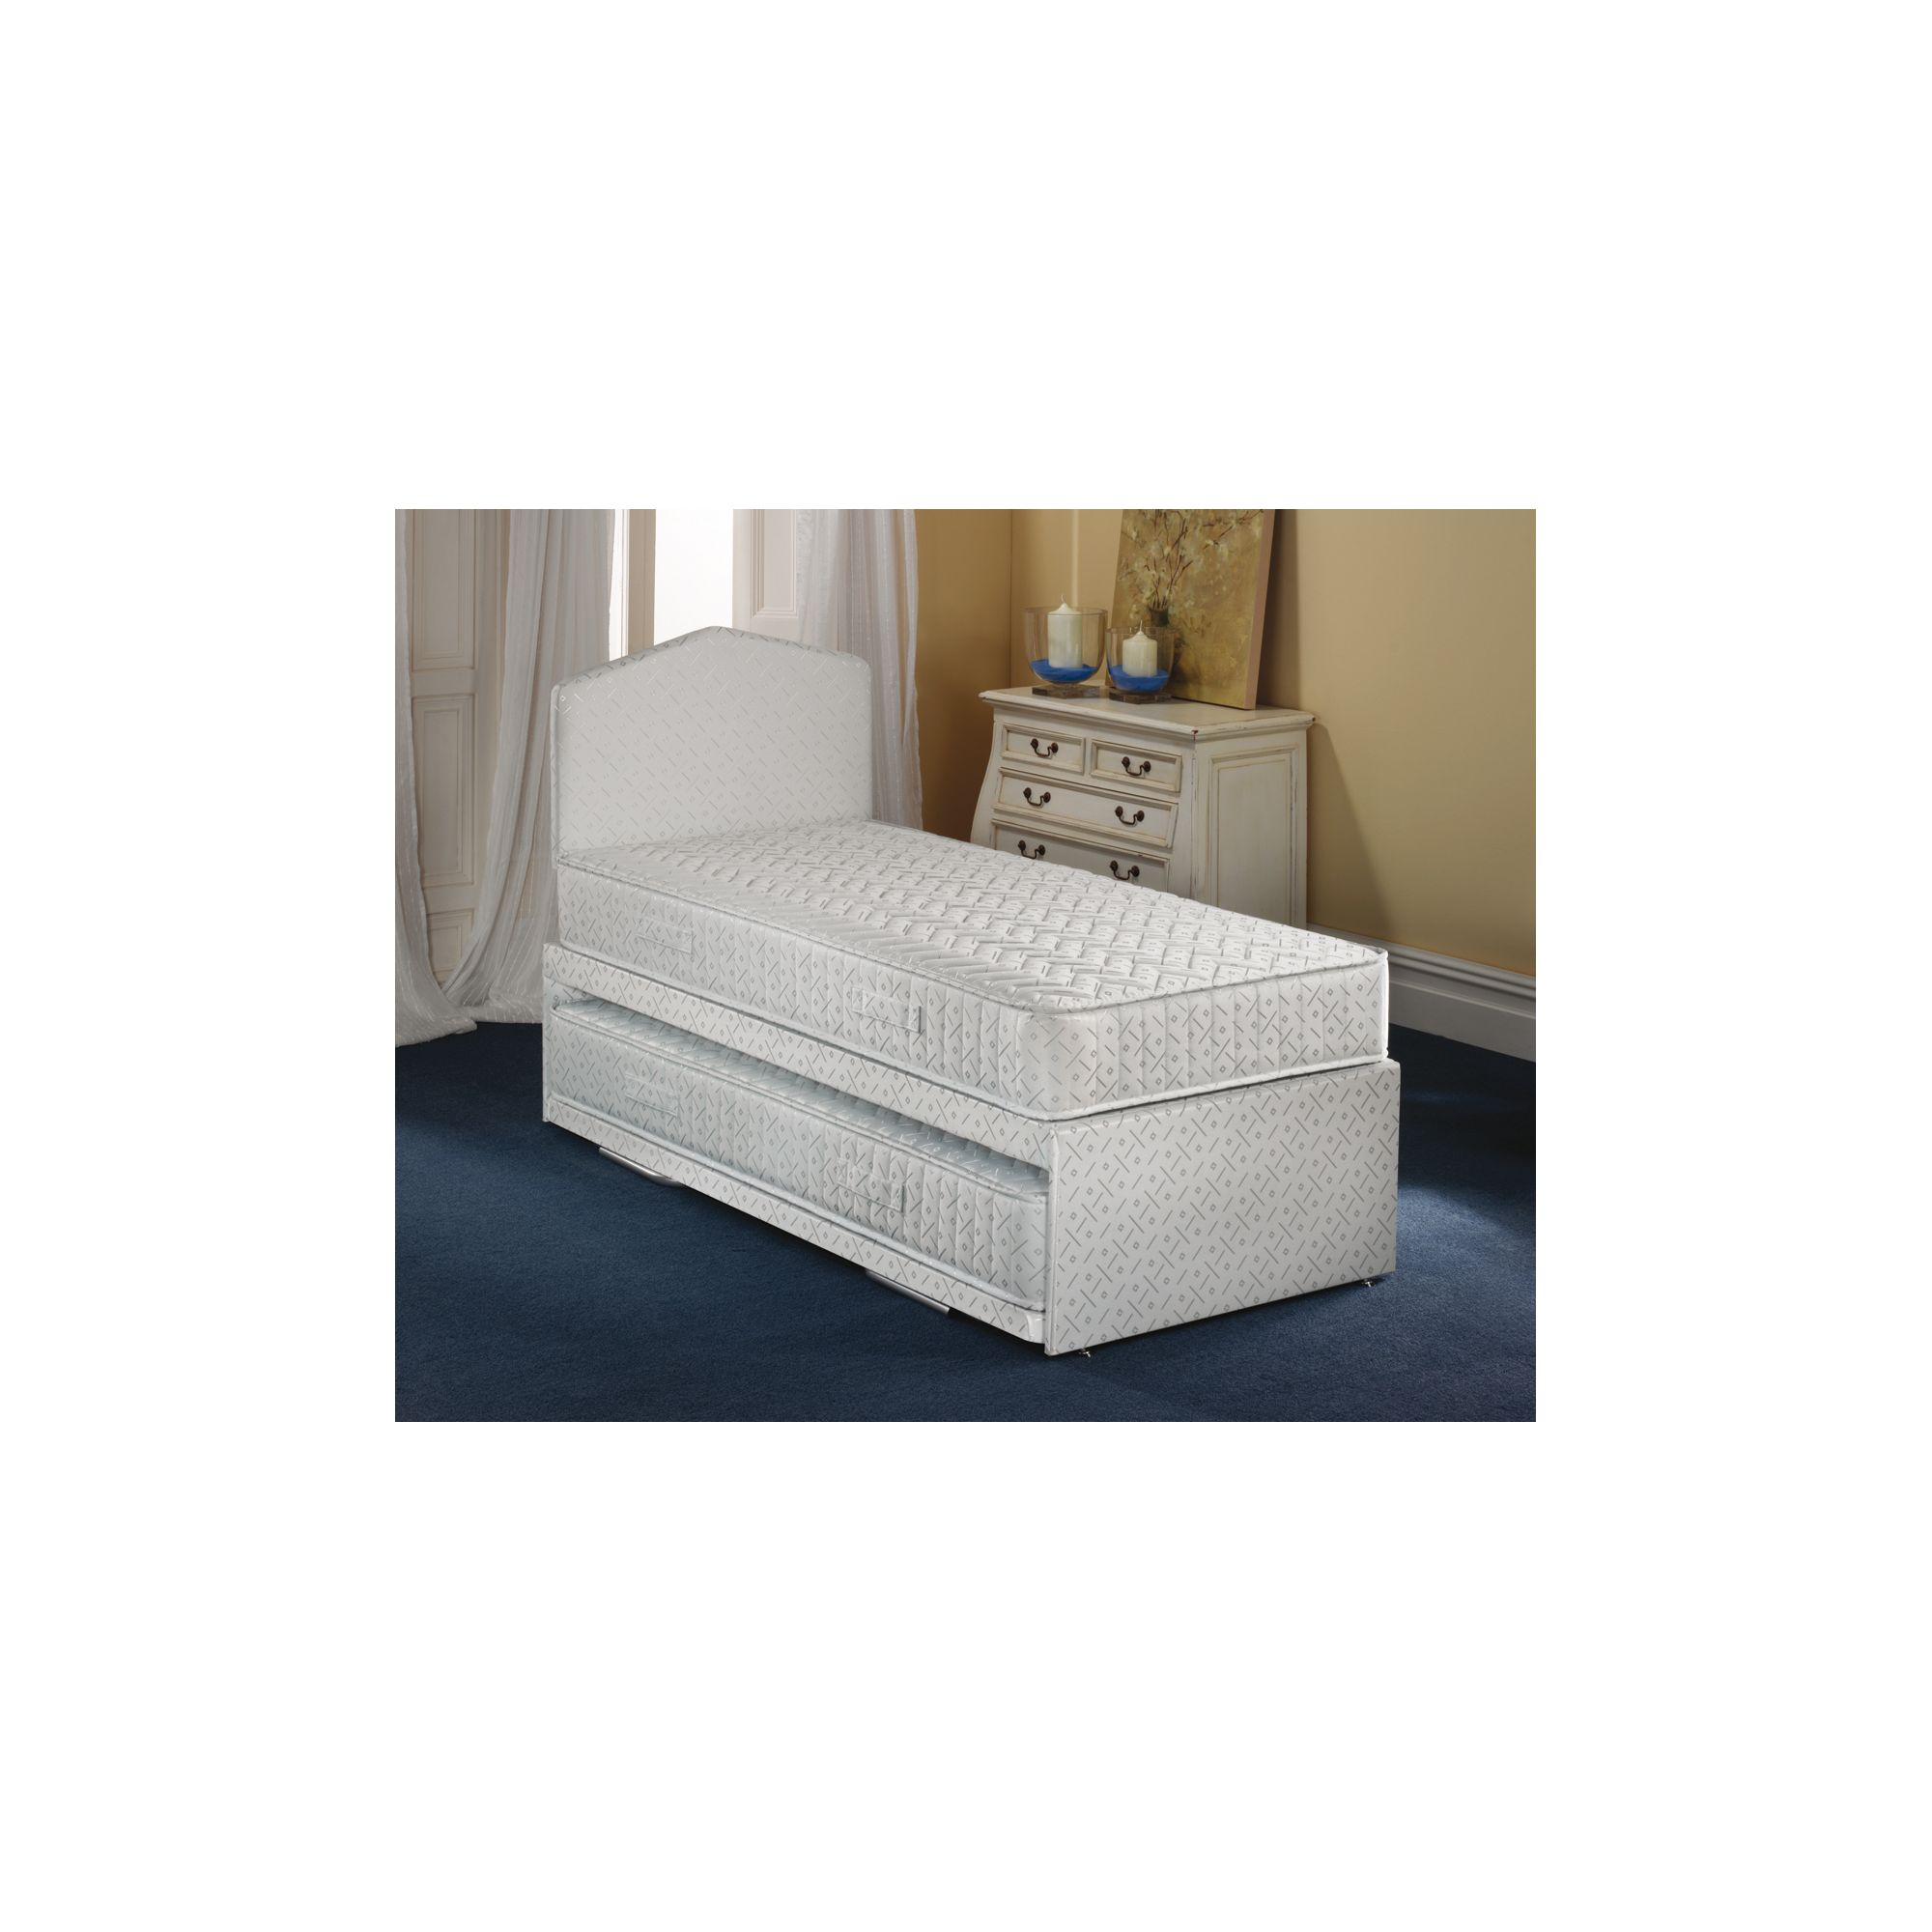 Airsprung Beds Enigma Full Length Guest Bed - Single at Tesco Direct